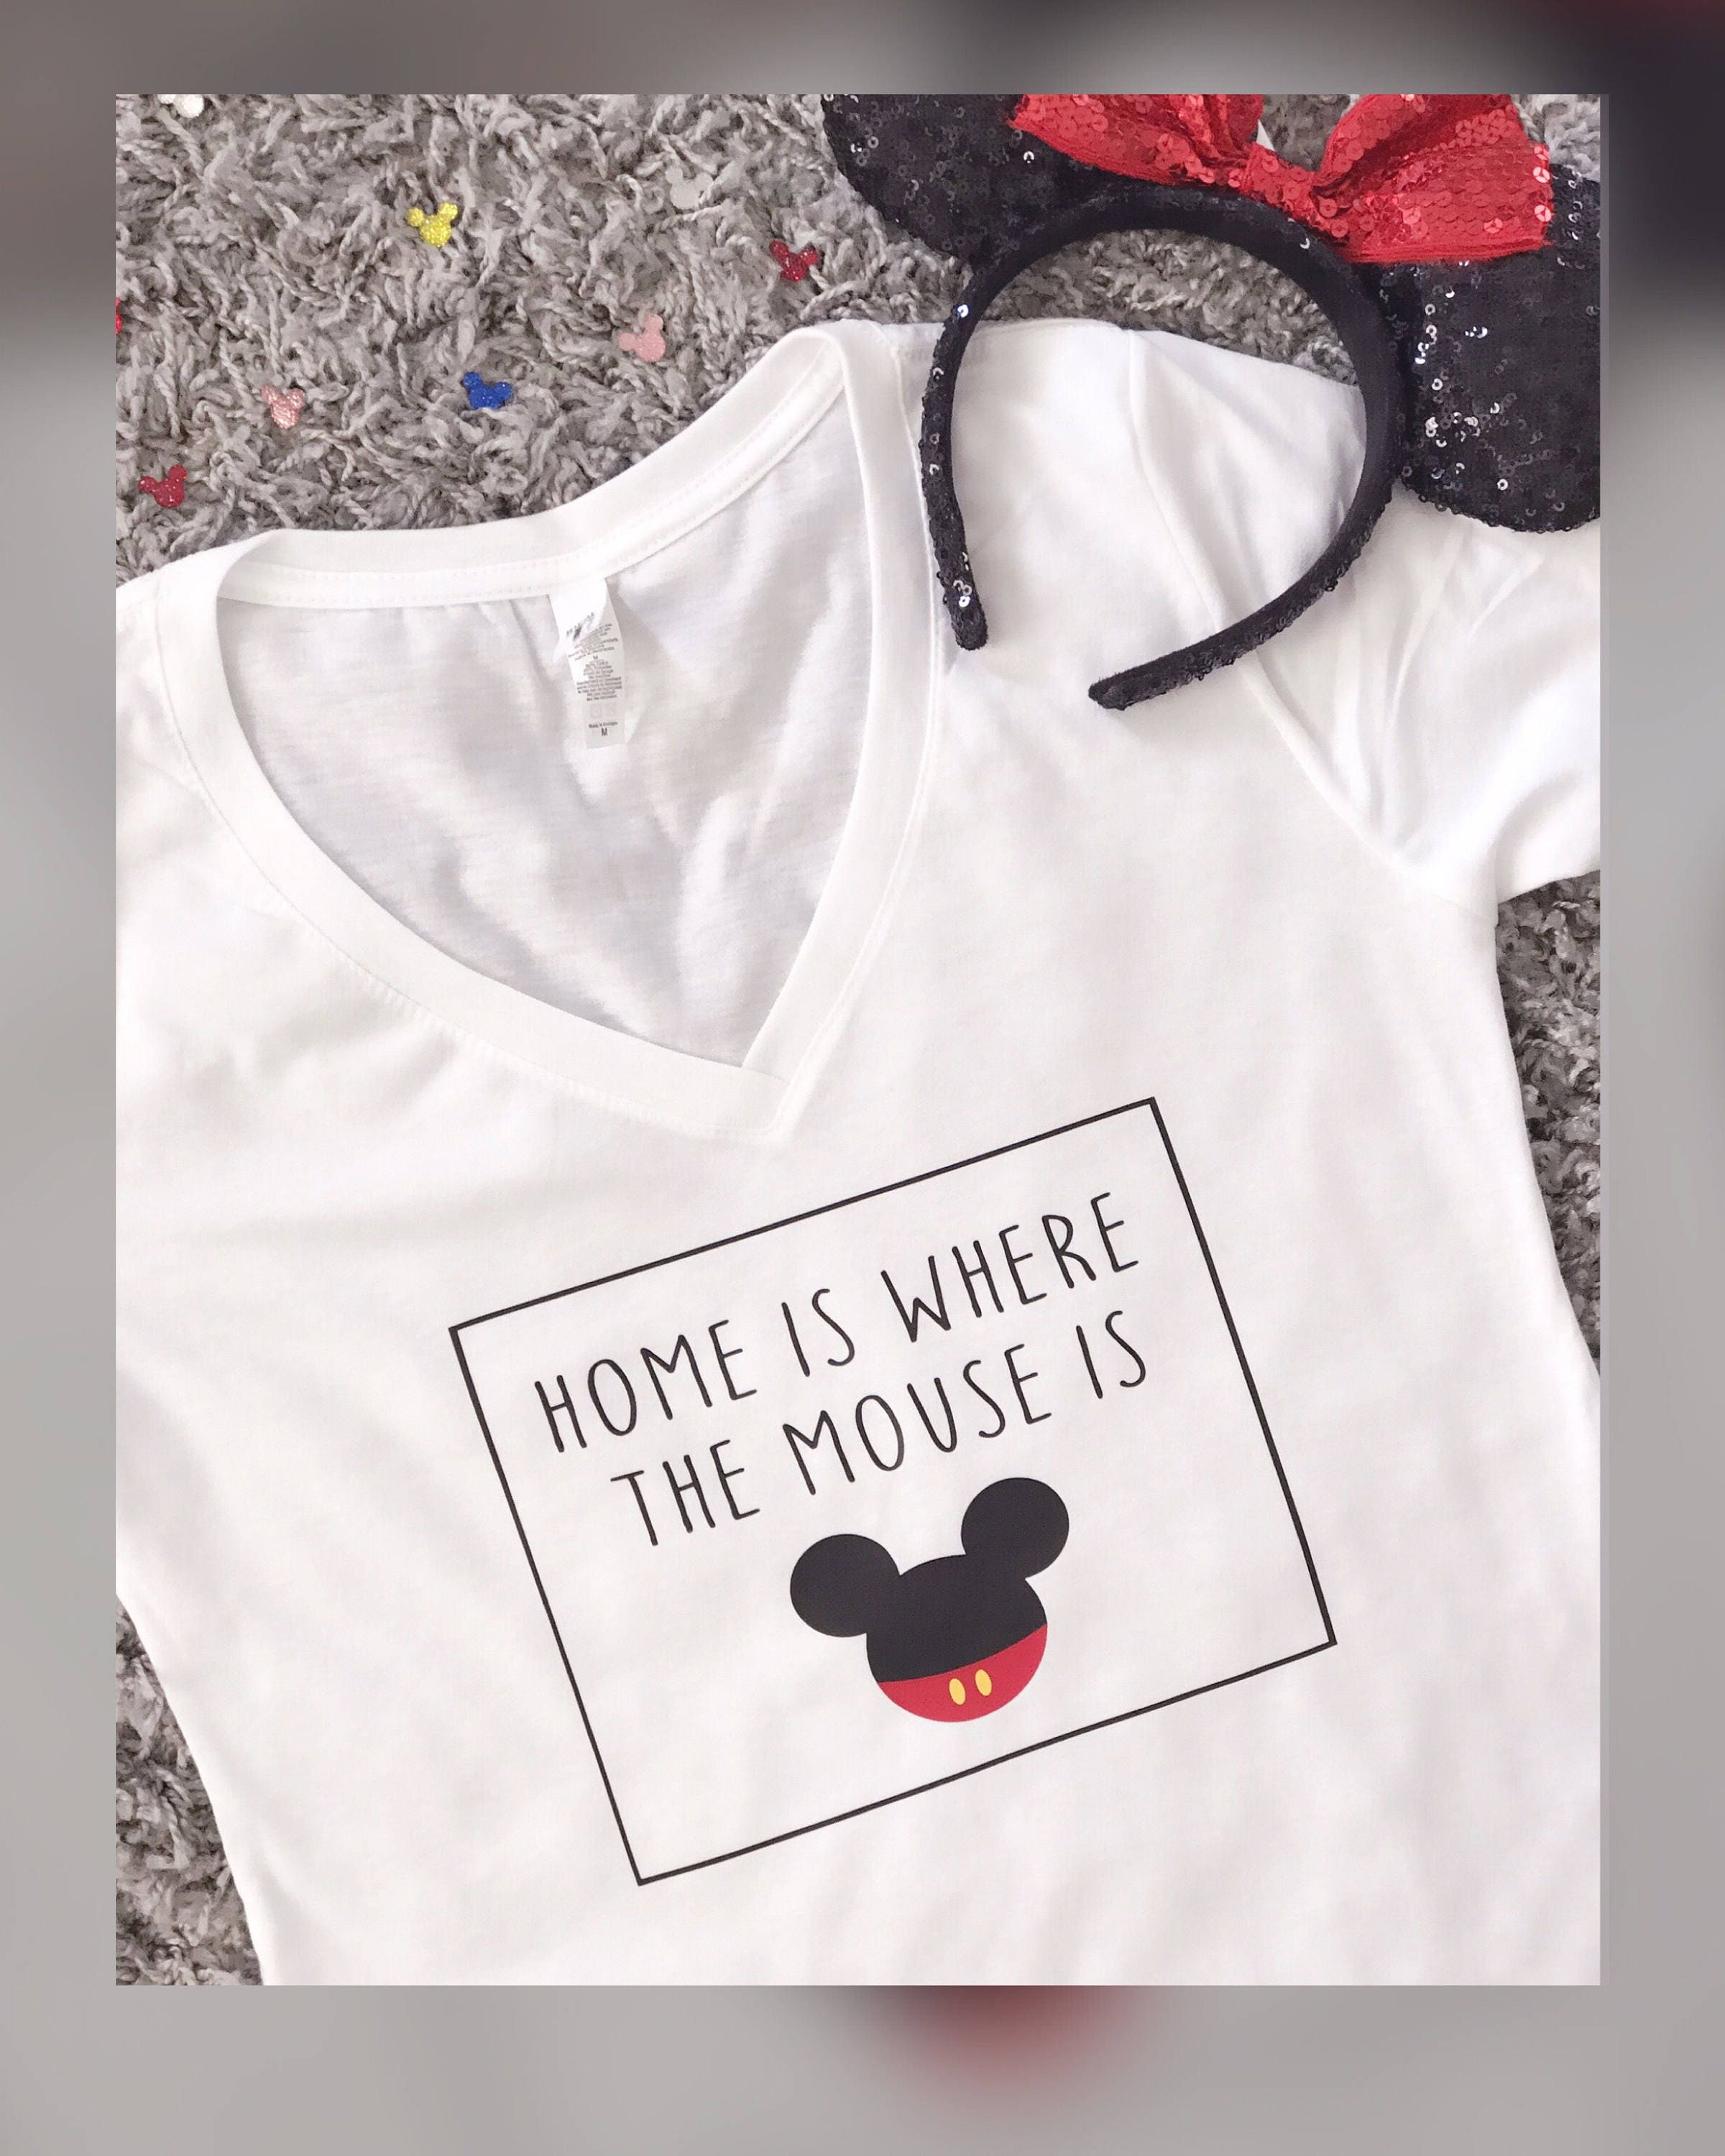 Home Is Where The Mouse Is Tee Disney Tee Funny Disney